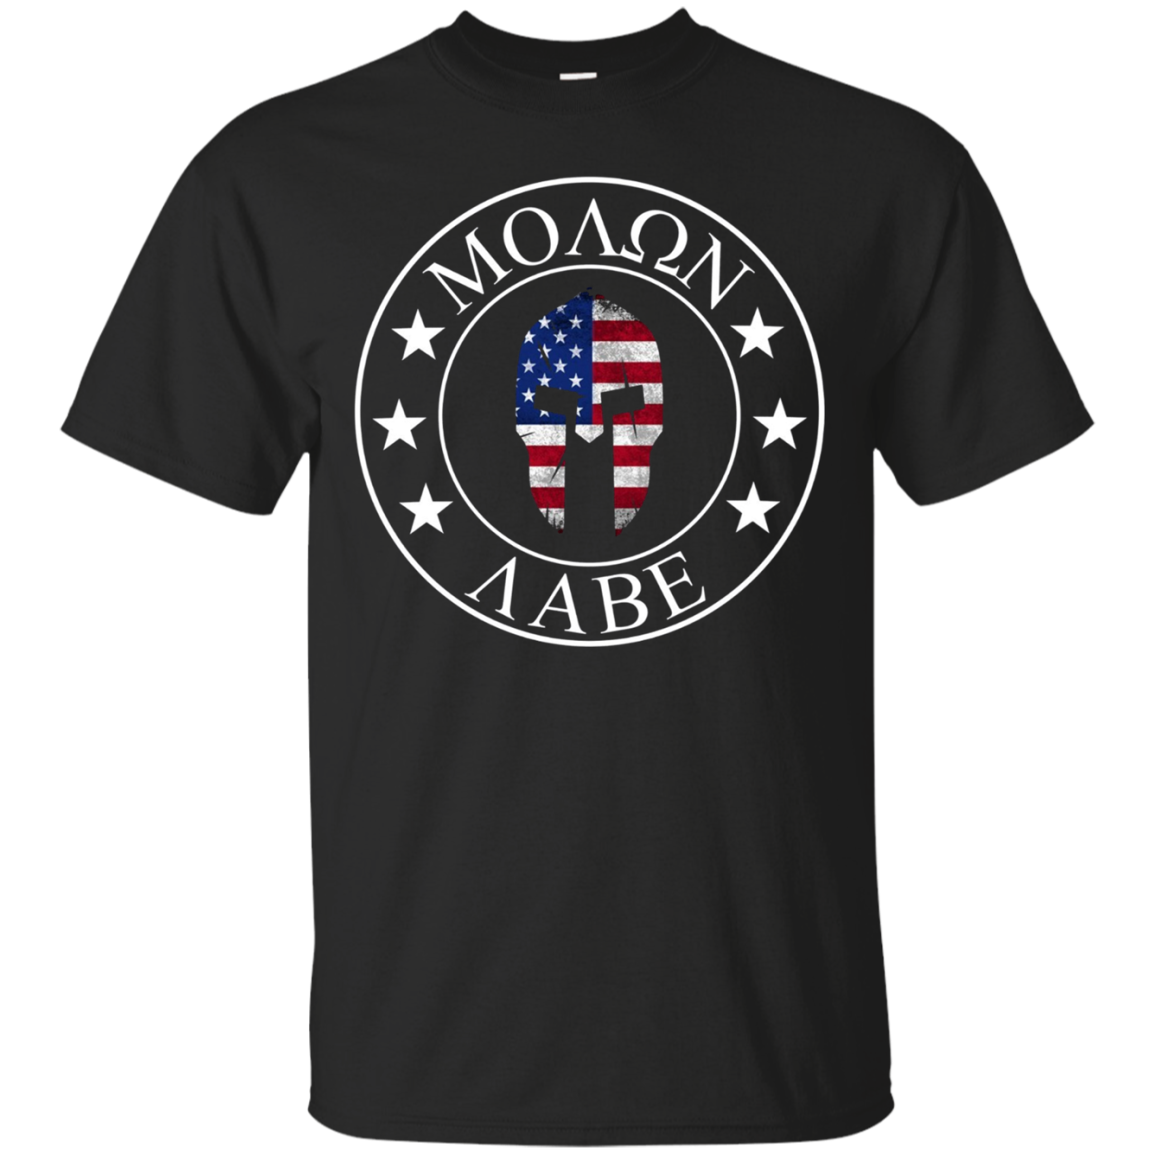 Molon Labe Spartan Long Sleeve T-Shirt